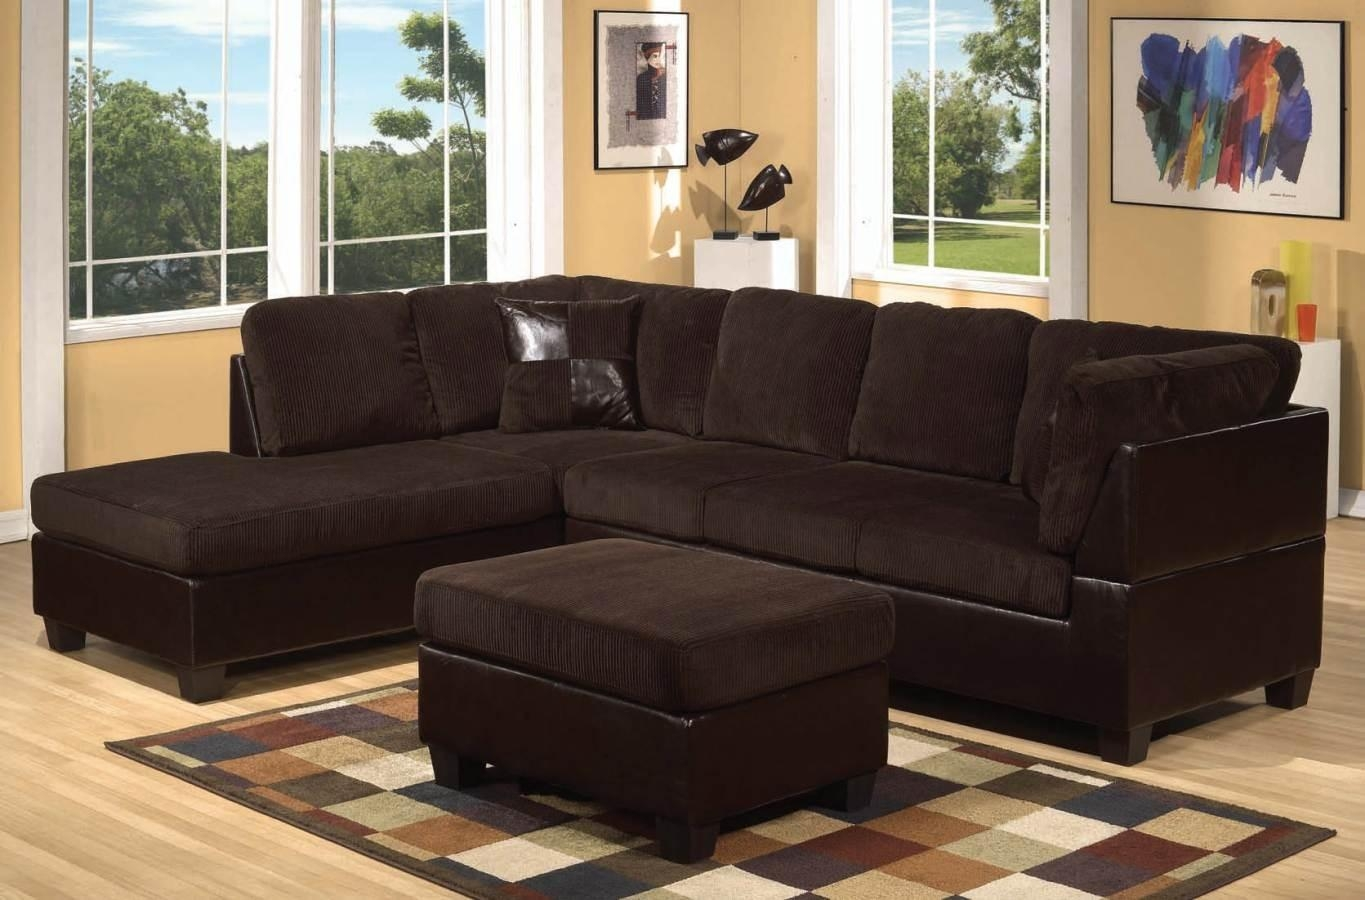 Brown Corduroy Couch : New Lighting – Trend Corduroy Couch Style Inside Brown Corduroy Sofas (View 6 of 20)